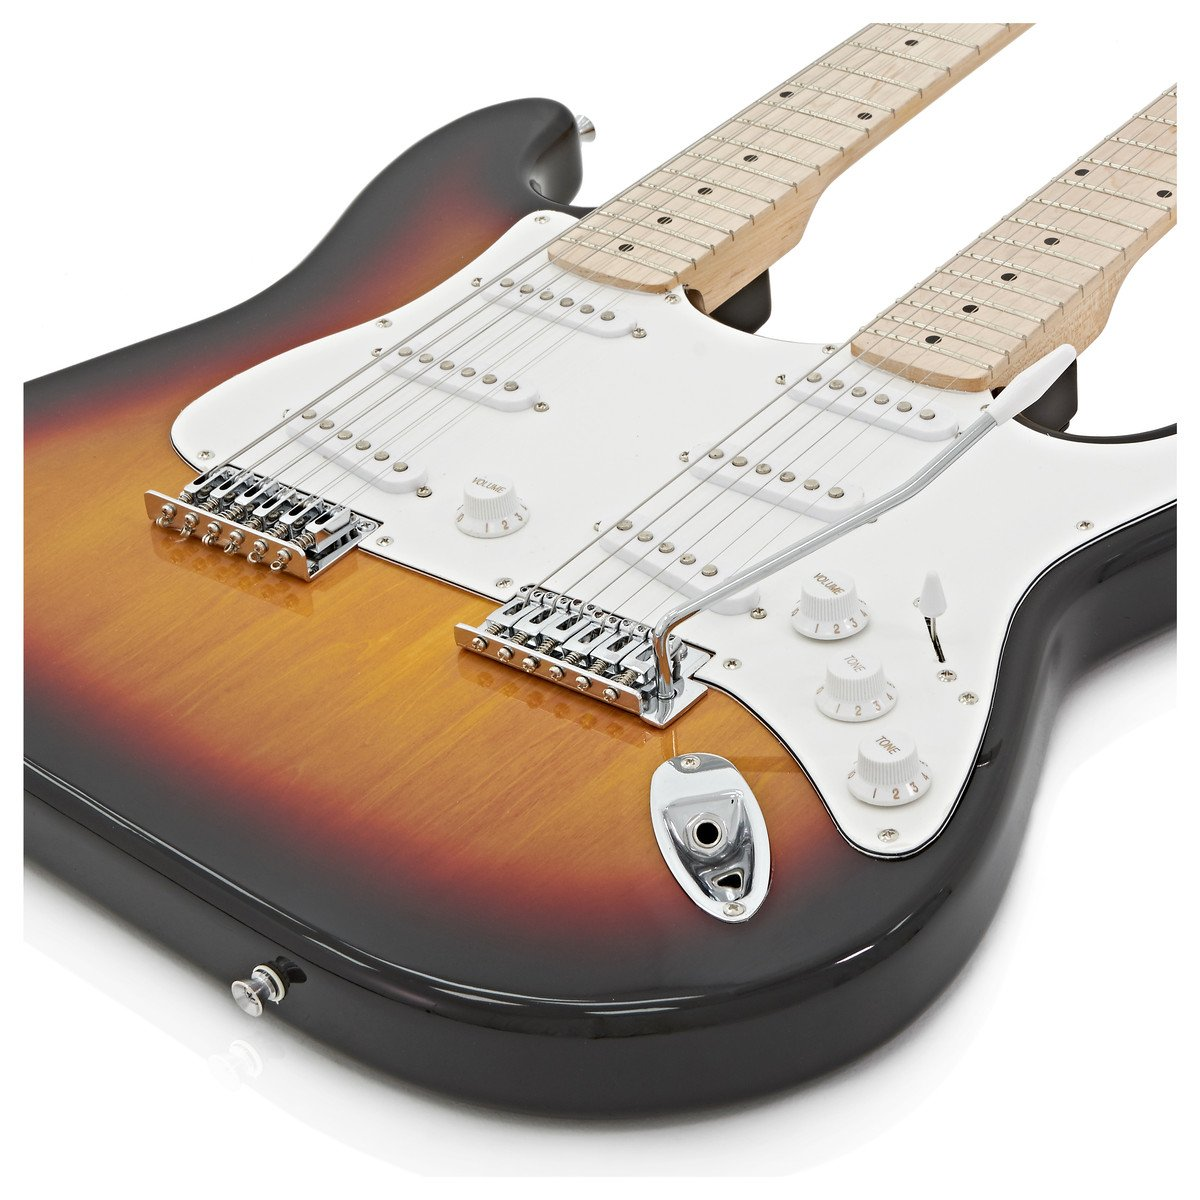 Guitarra LA de Doble Mástil de Gear4music - Sunburst: Amazon.es: Instrumentos musicales